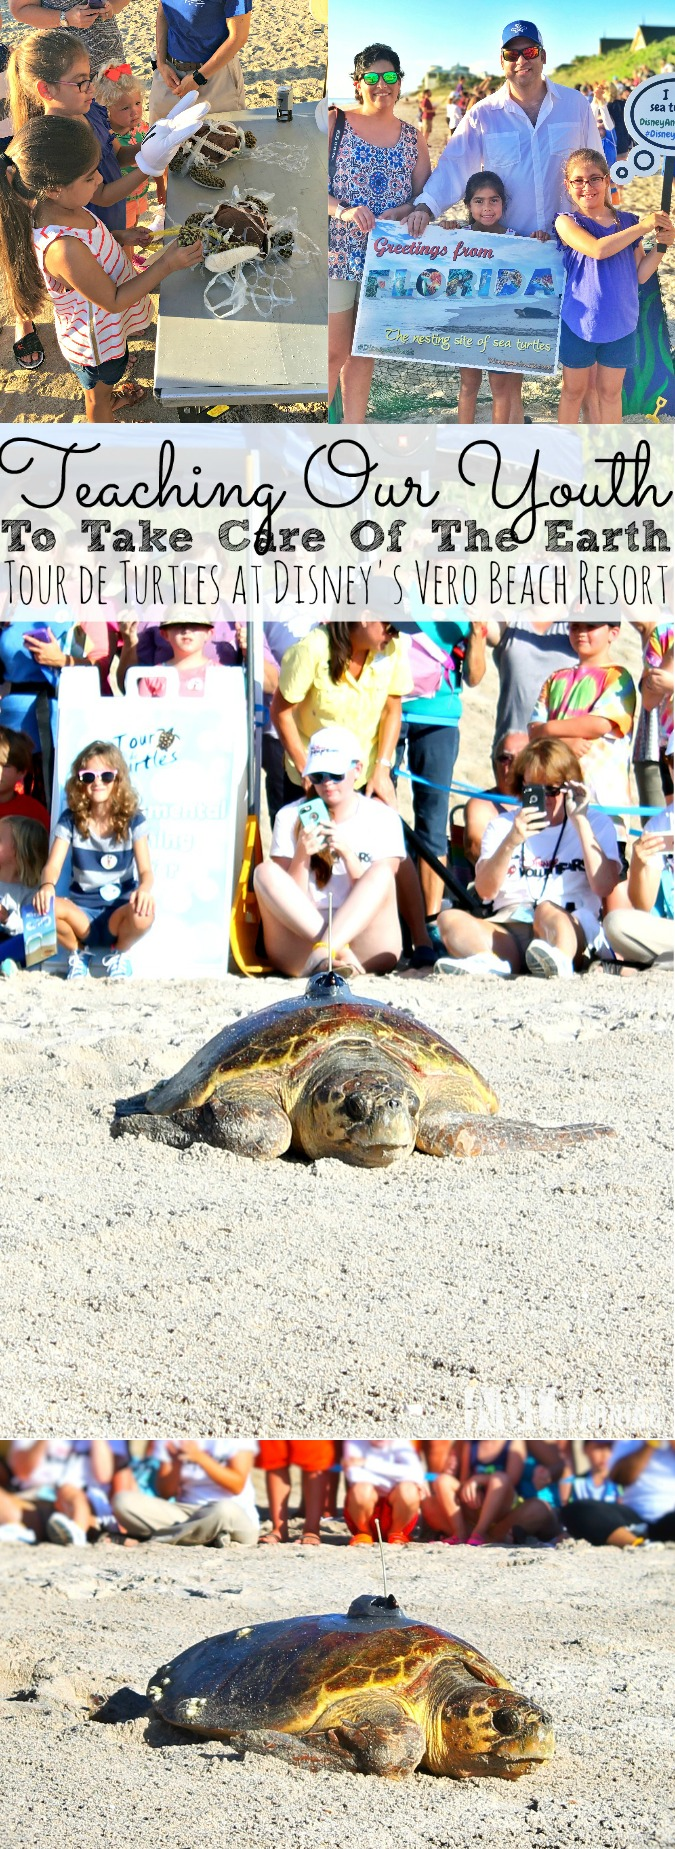 Teaching Our Youth To Take Care Of The Earth | Tour de Turtles at Disney's Vero Beach Resort - simplytodaylife.com